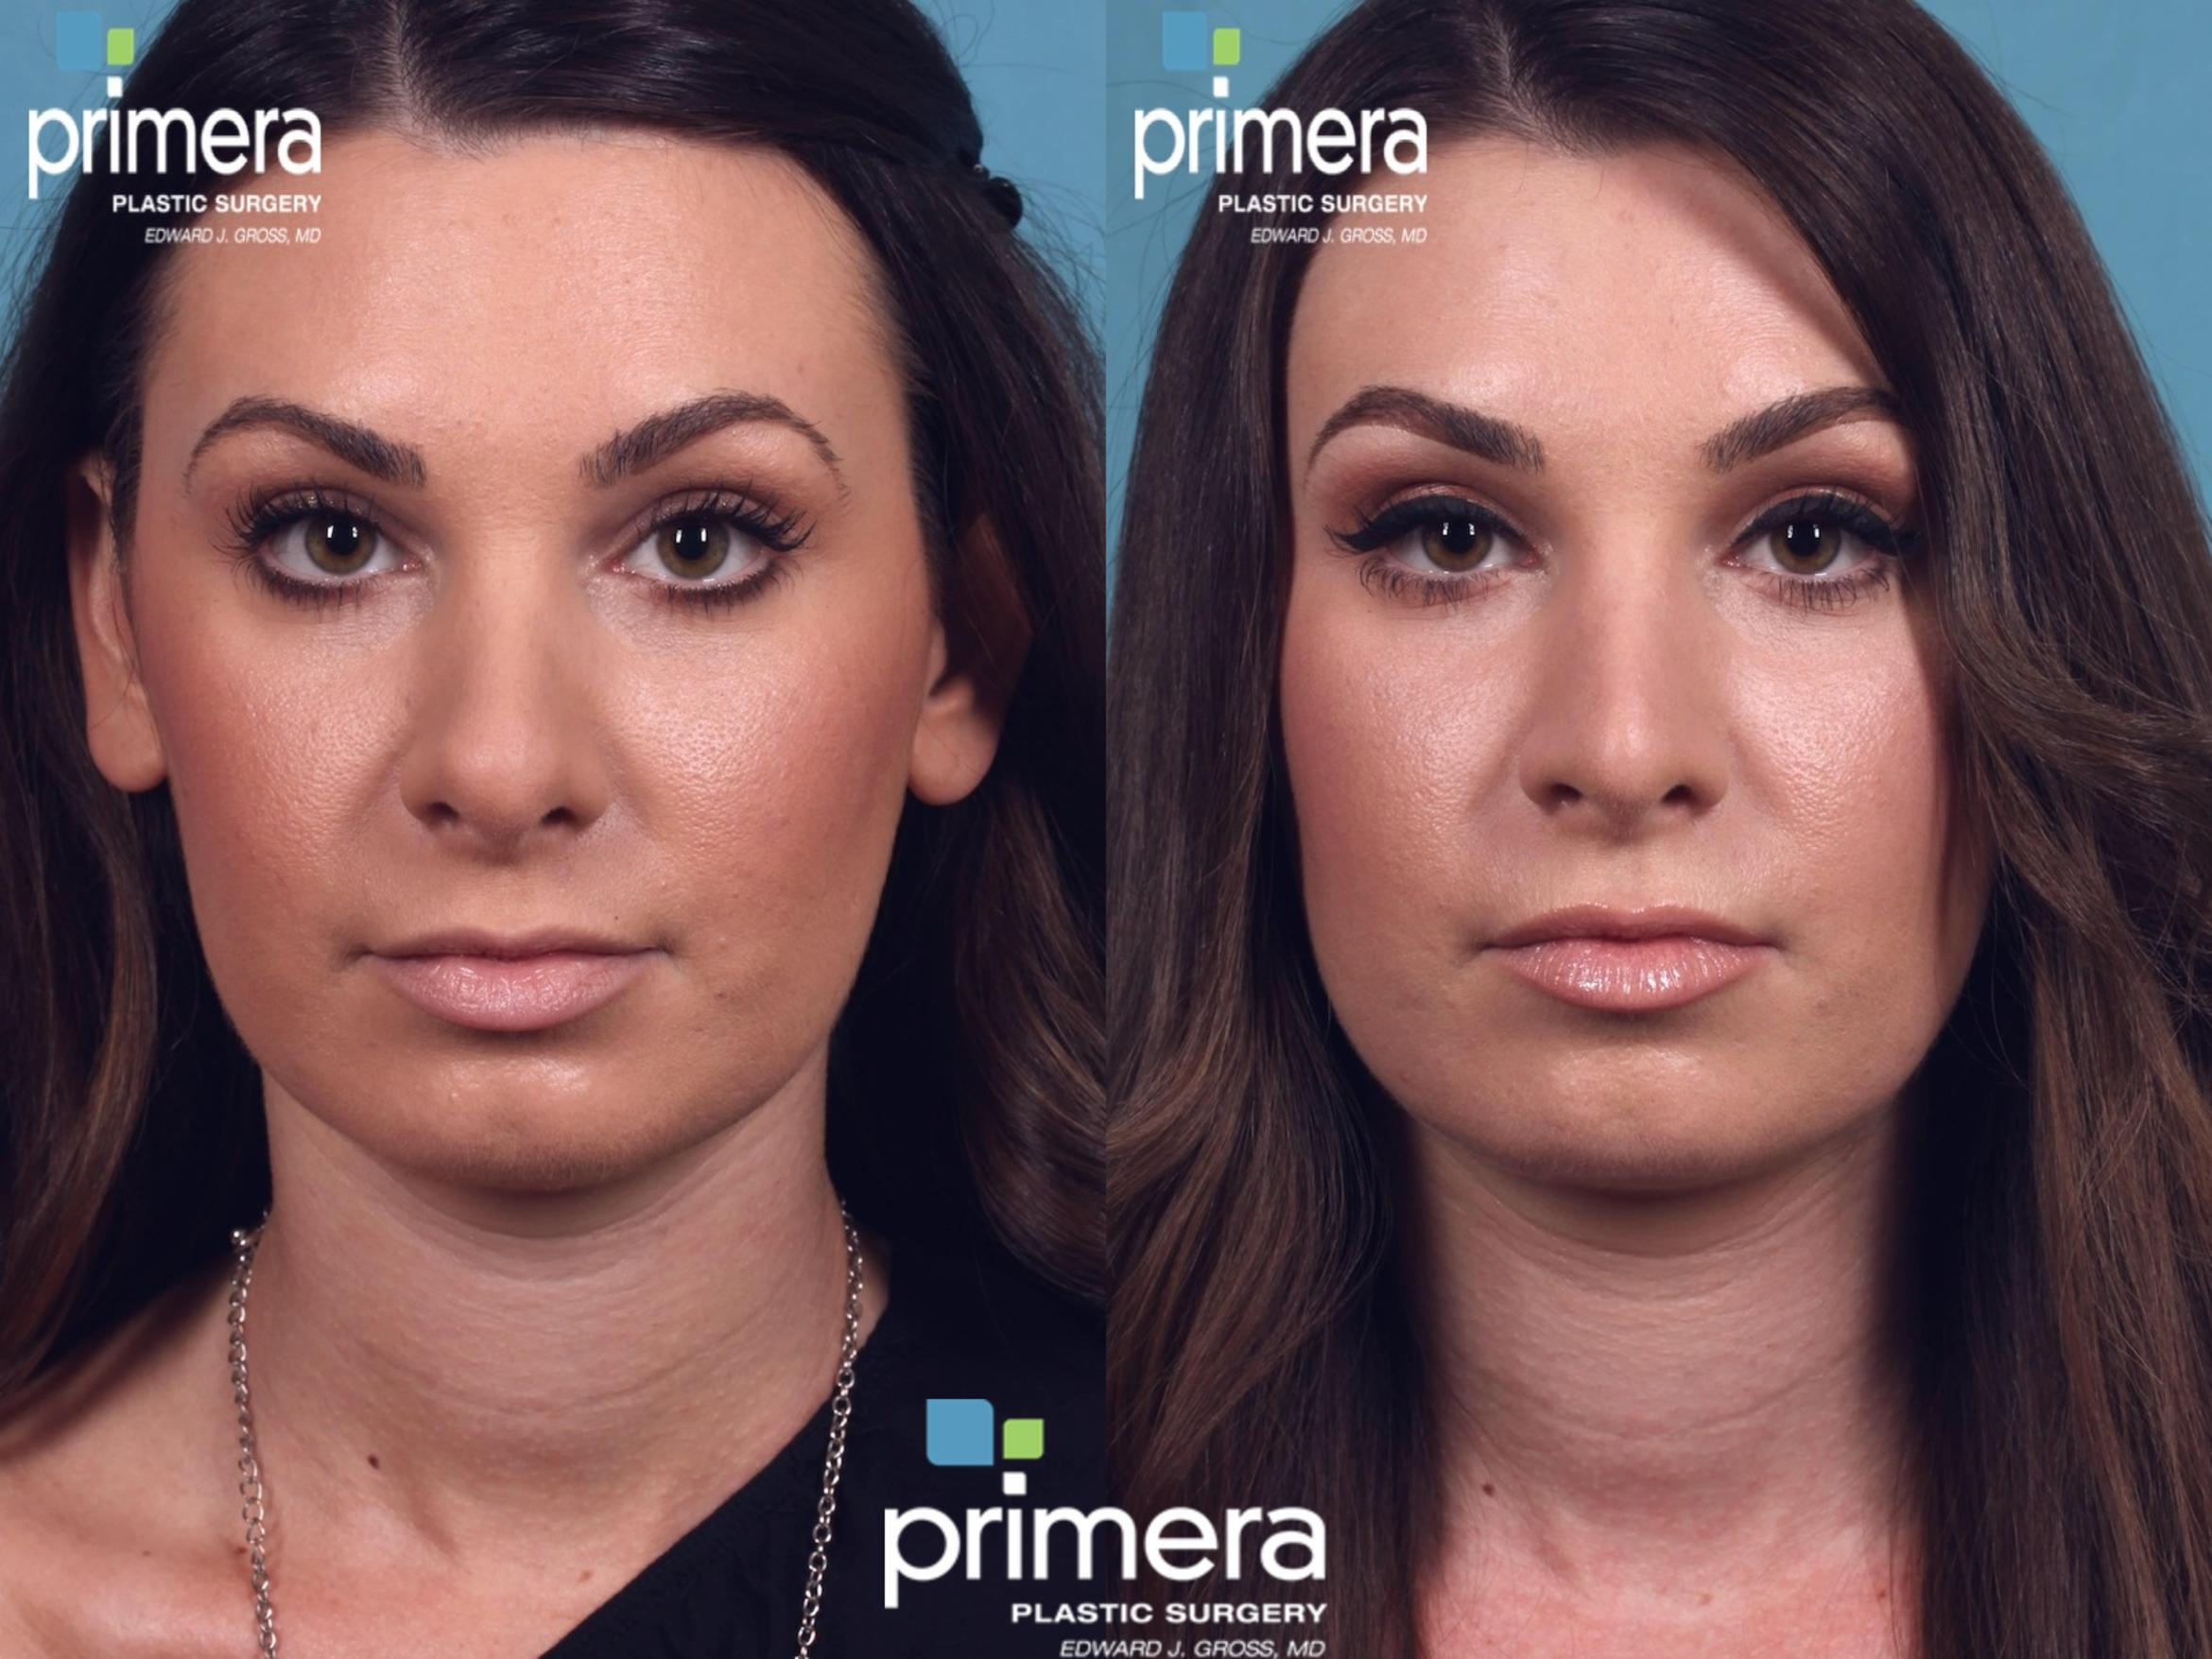 Revision Rhinoplasty Before & After Photo | Orlando, Florida | Primera Plastic Surgery